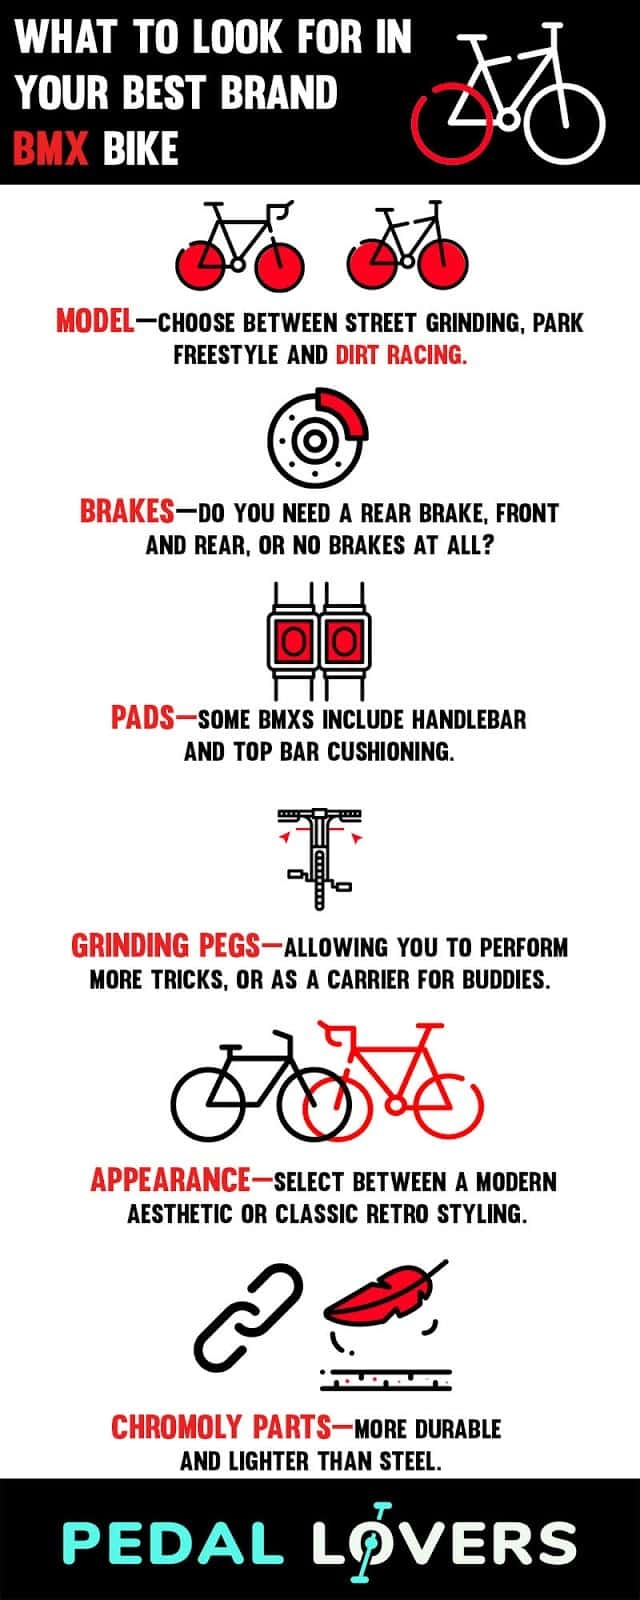 best bmx bike brands infographic